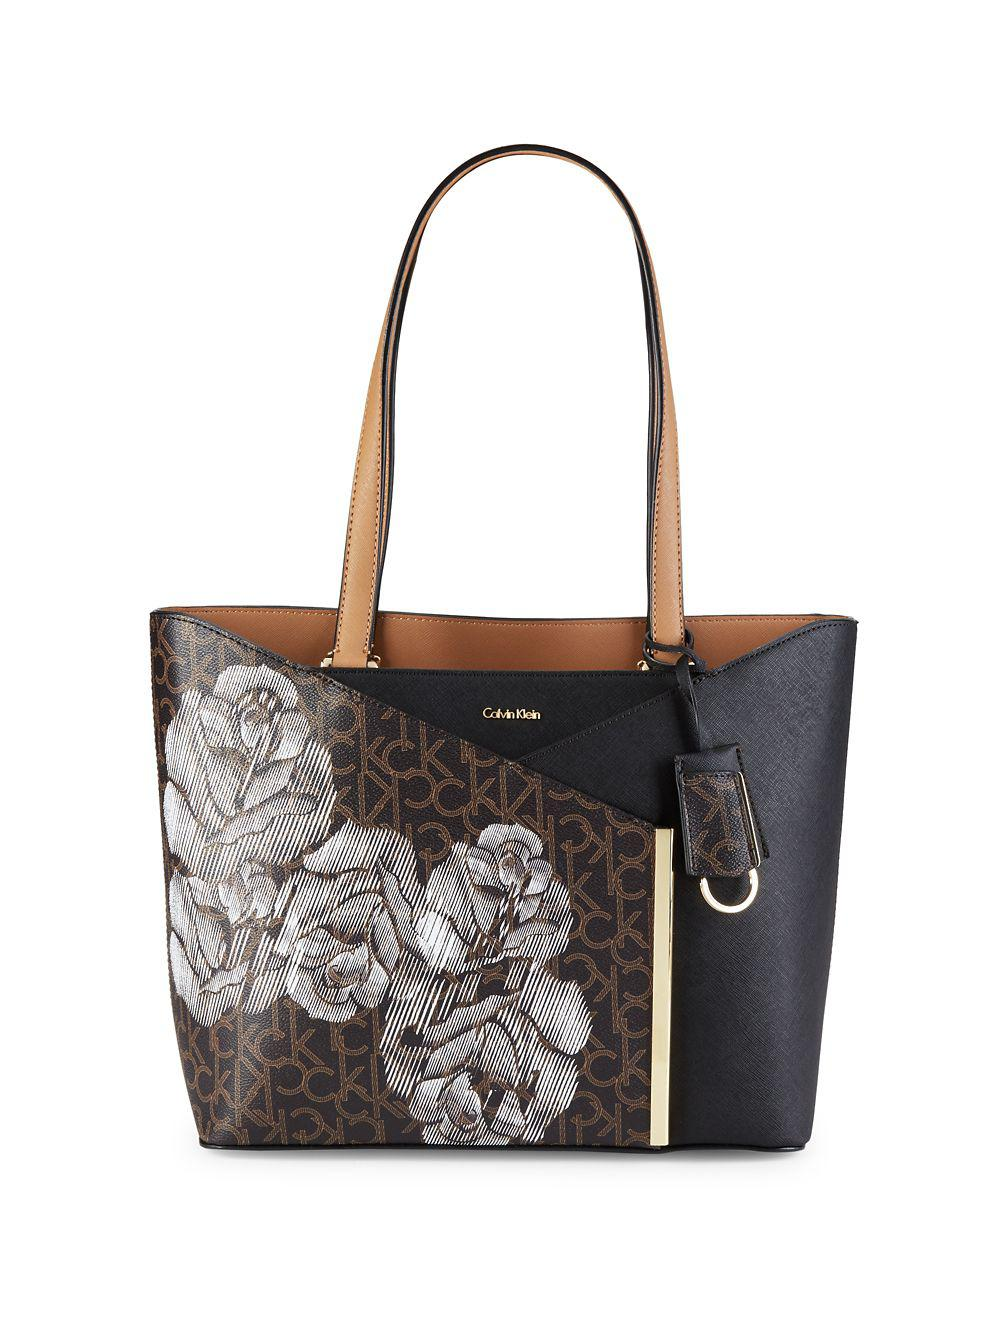 62789fc7ba Calvin Klein Sketched Floral Leather Tote in Black - Lyst